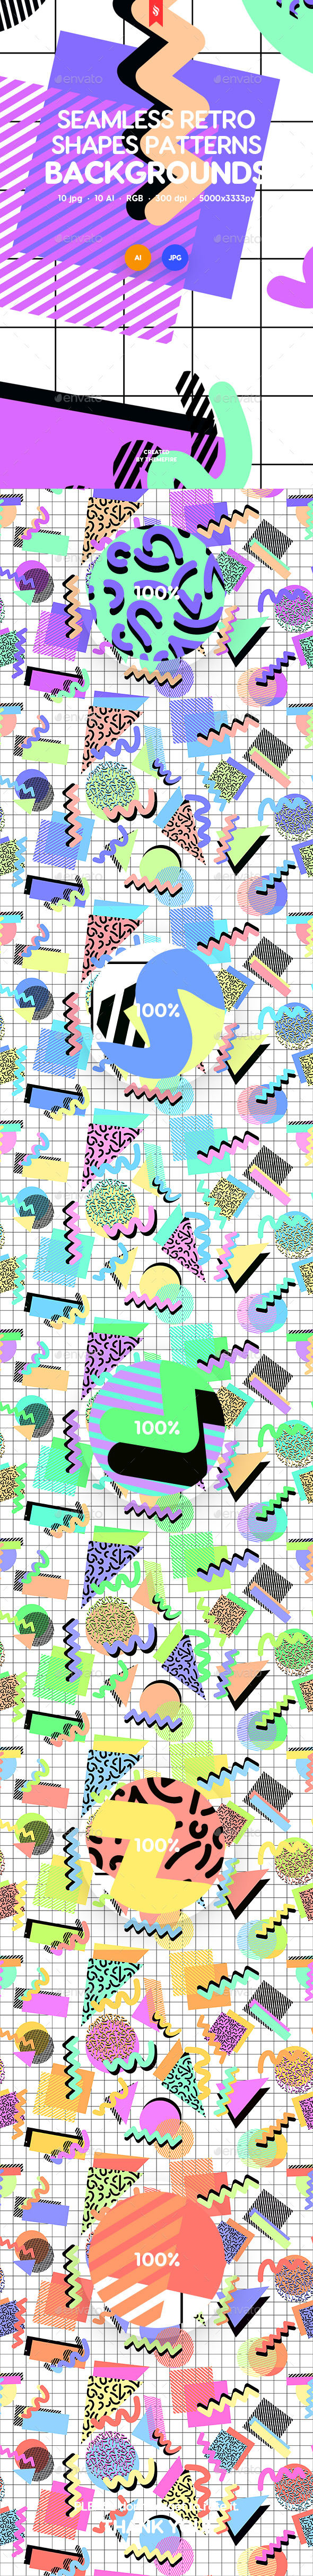 GraphicRiver Seamless Abstract Retro Shapes Patterns Backgrounds 21158151